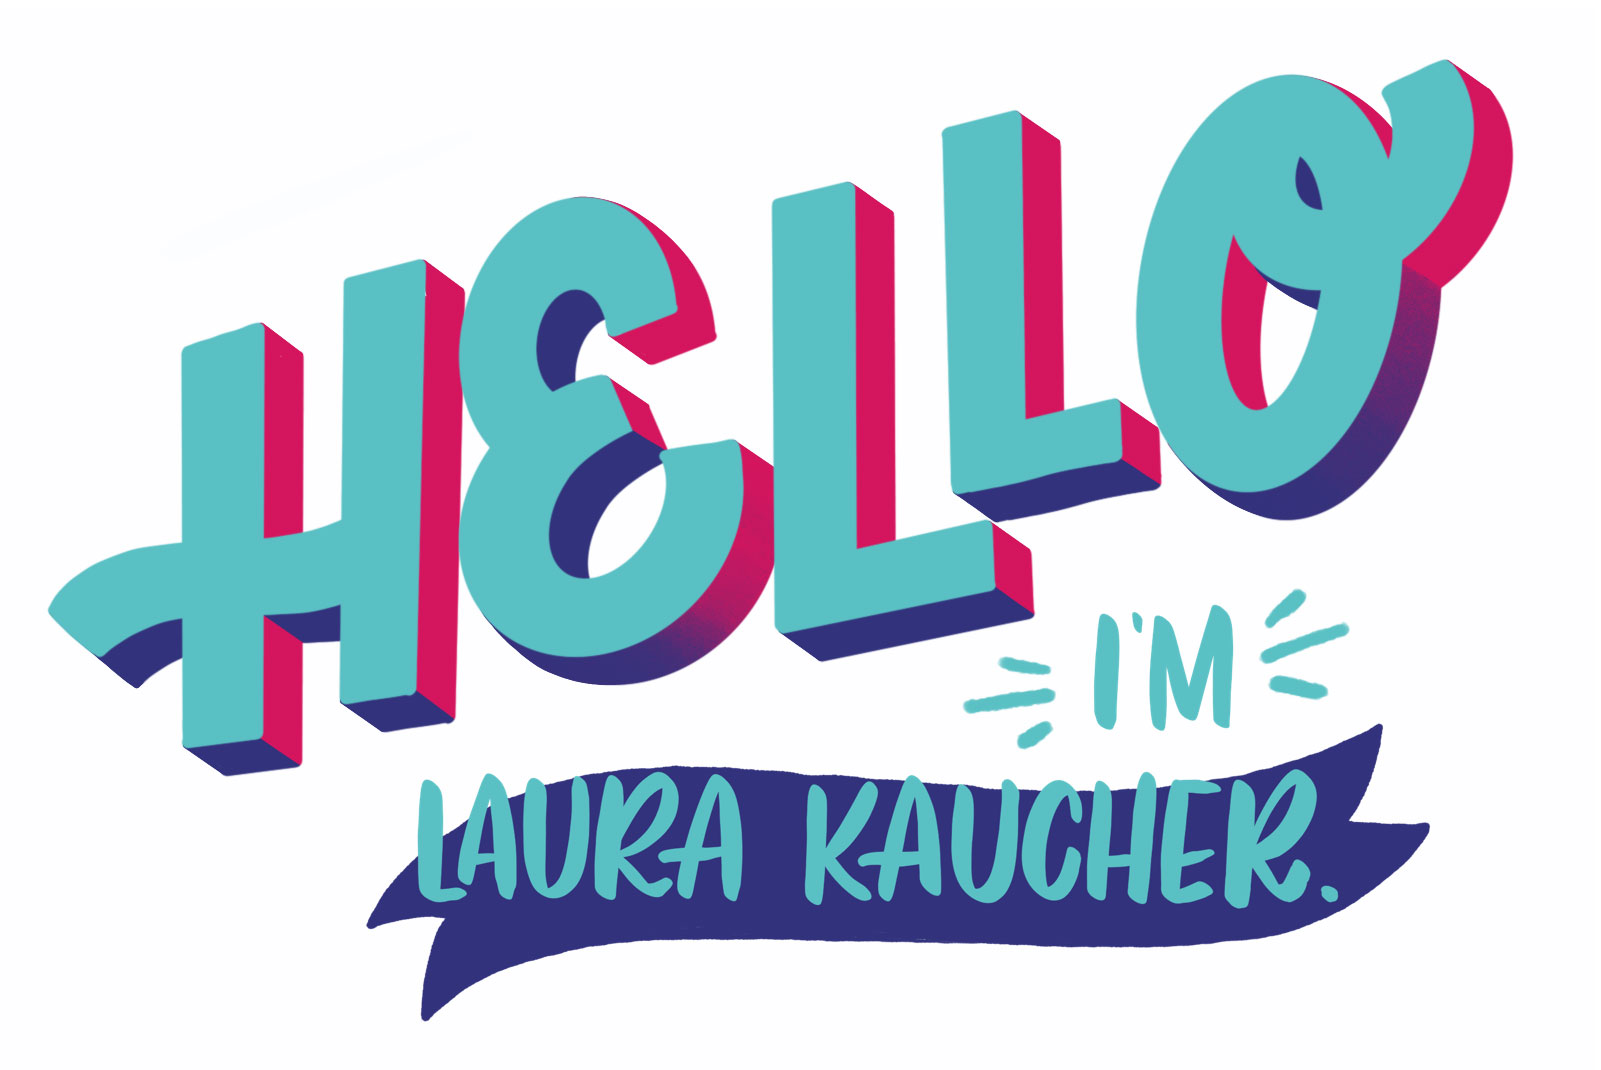 I am a hand lettering artist and visual designer. - I have a passion for building brands, editorial design, and custom stationery.